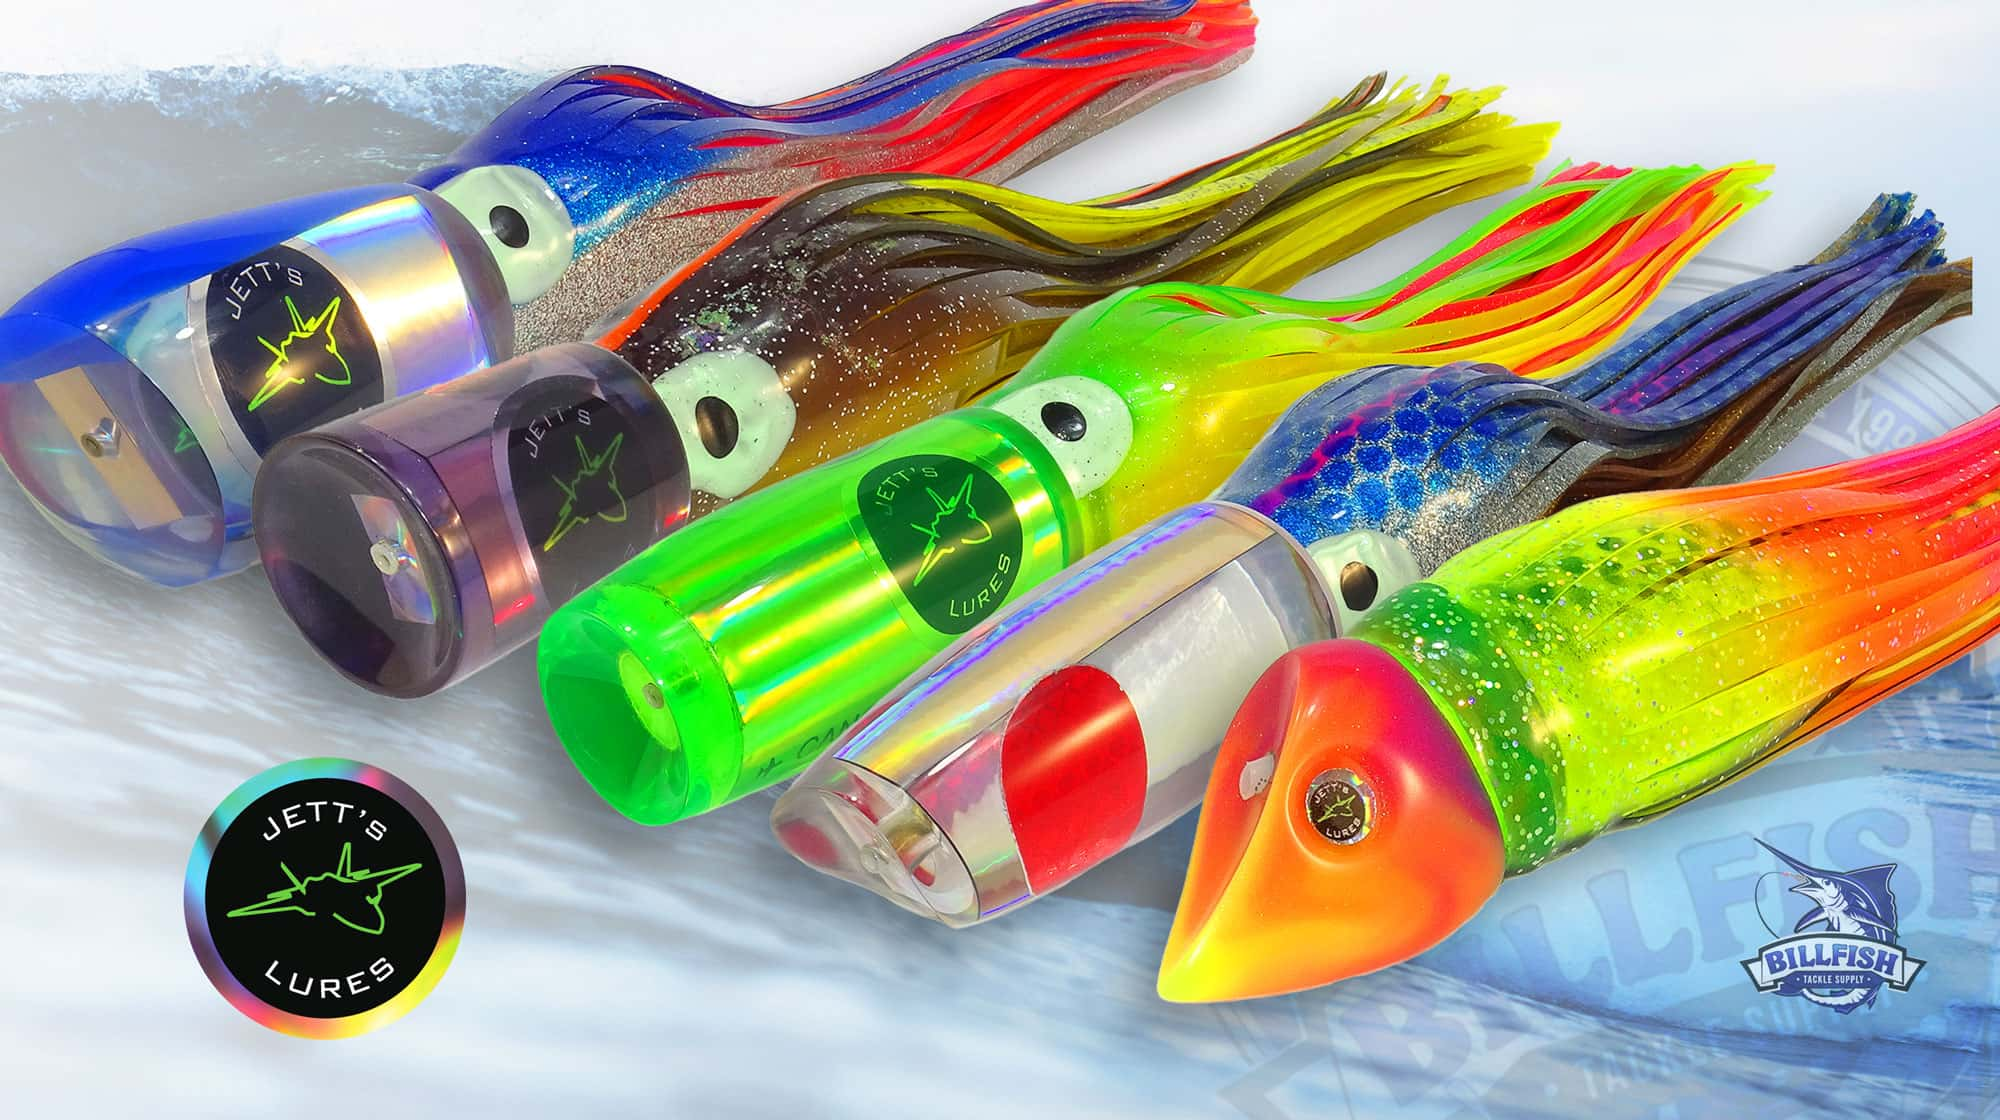 Jetts Lures - Best Marlin and Tuna Lures - Billfish Tackle Supply